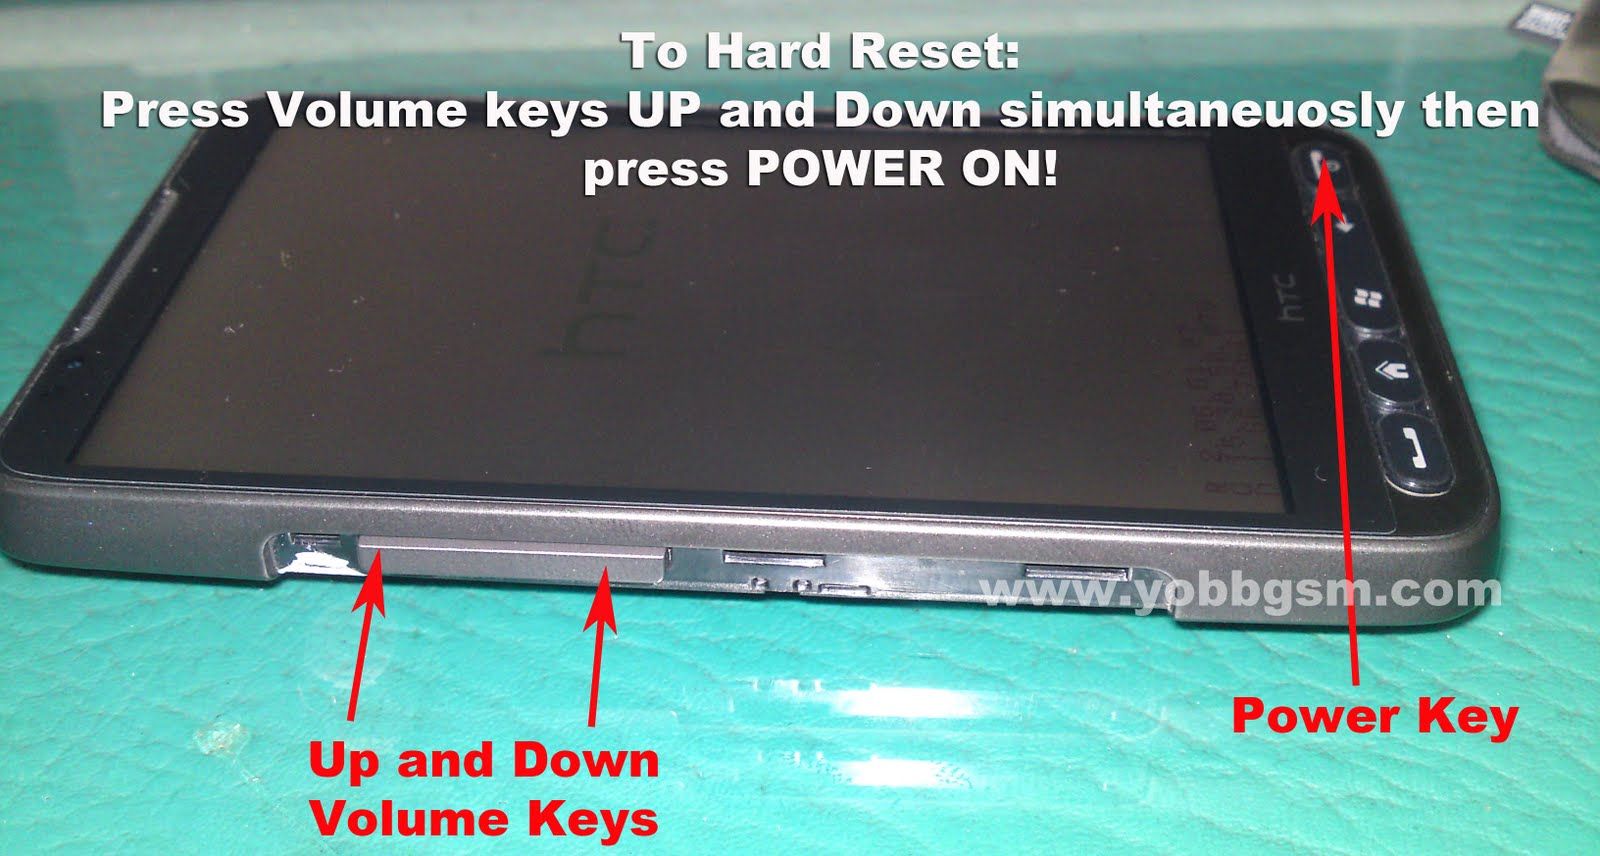 Htc hd2 hints 9 : How to Hard Reset your Hd2 Leo